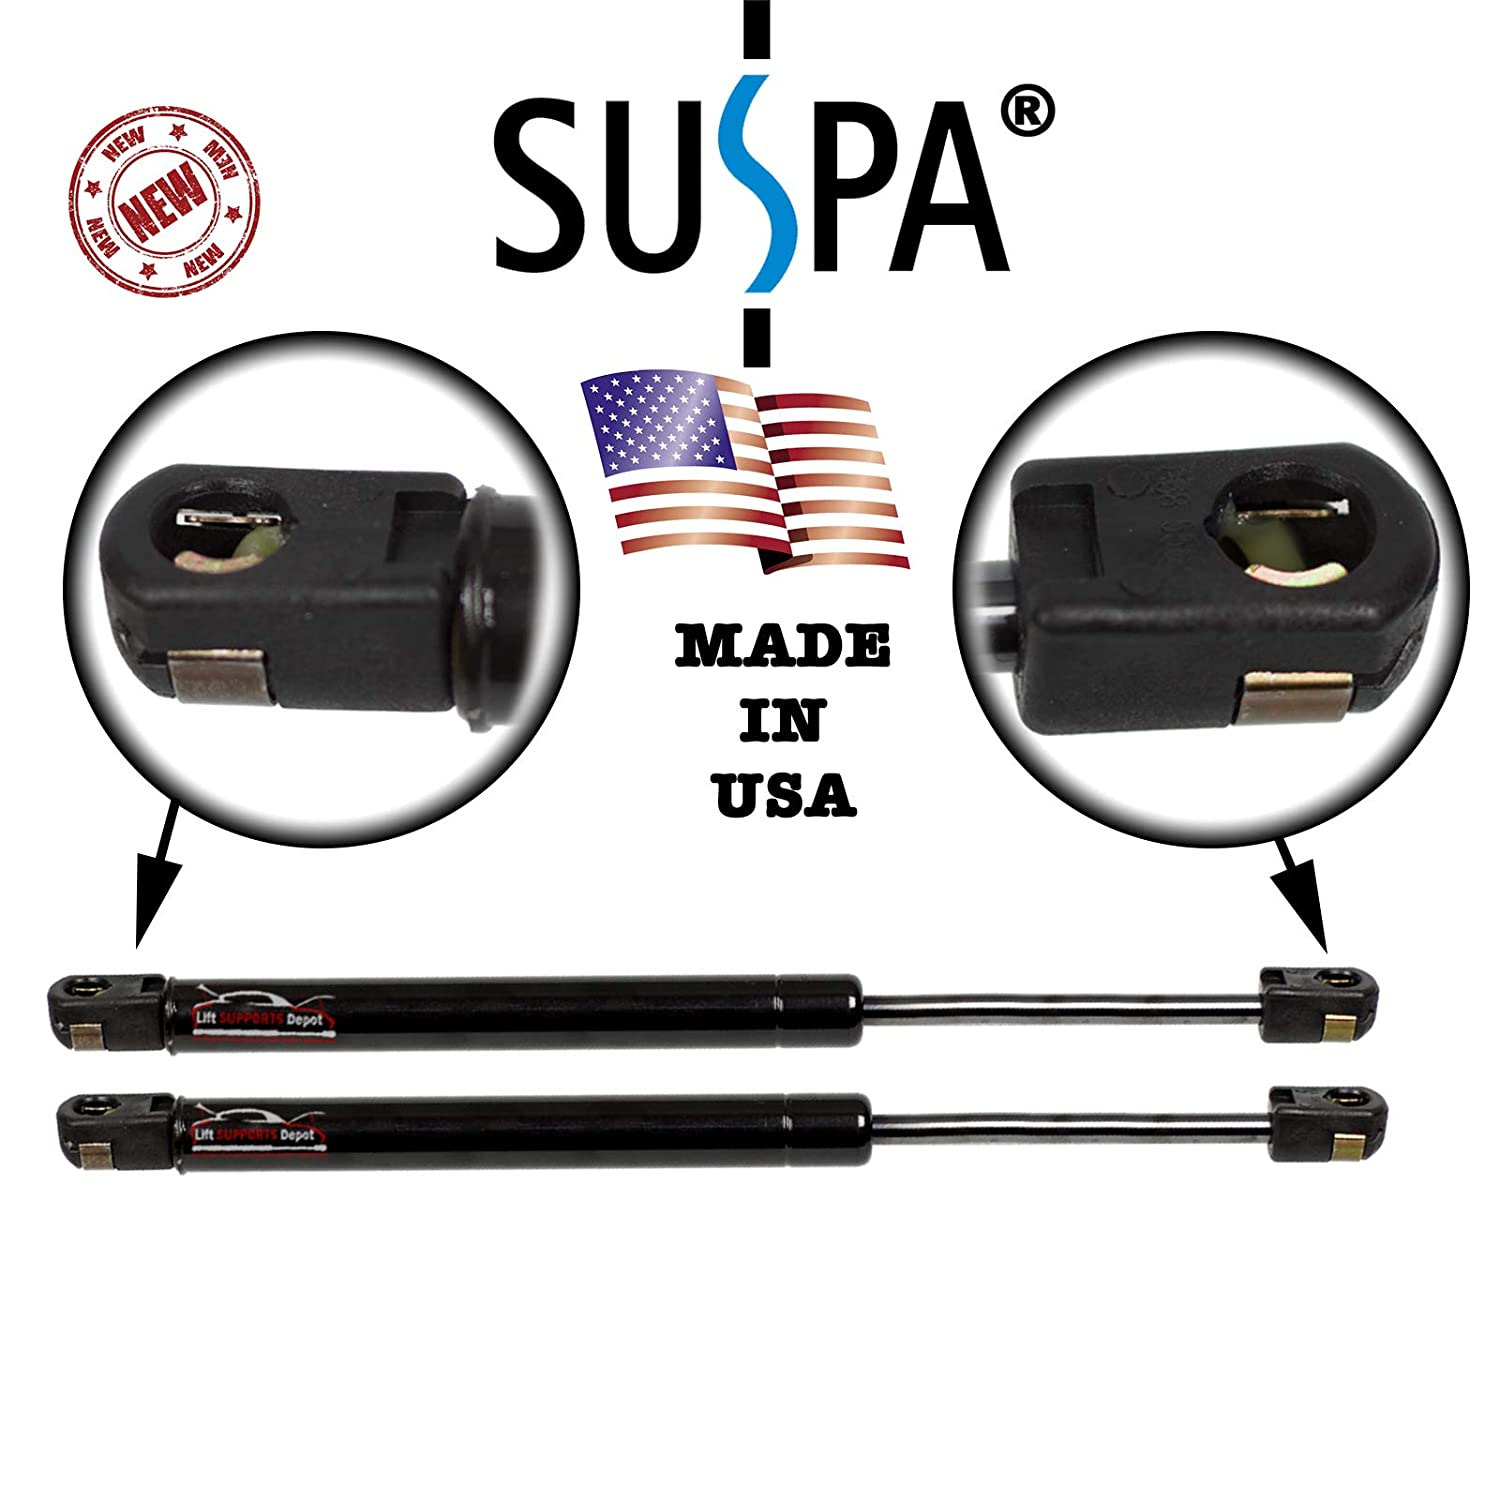 Genuine Suspa C16-14195 C1614195 Lift Supports Struts Shocks Cylinders Qty 2